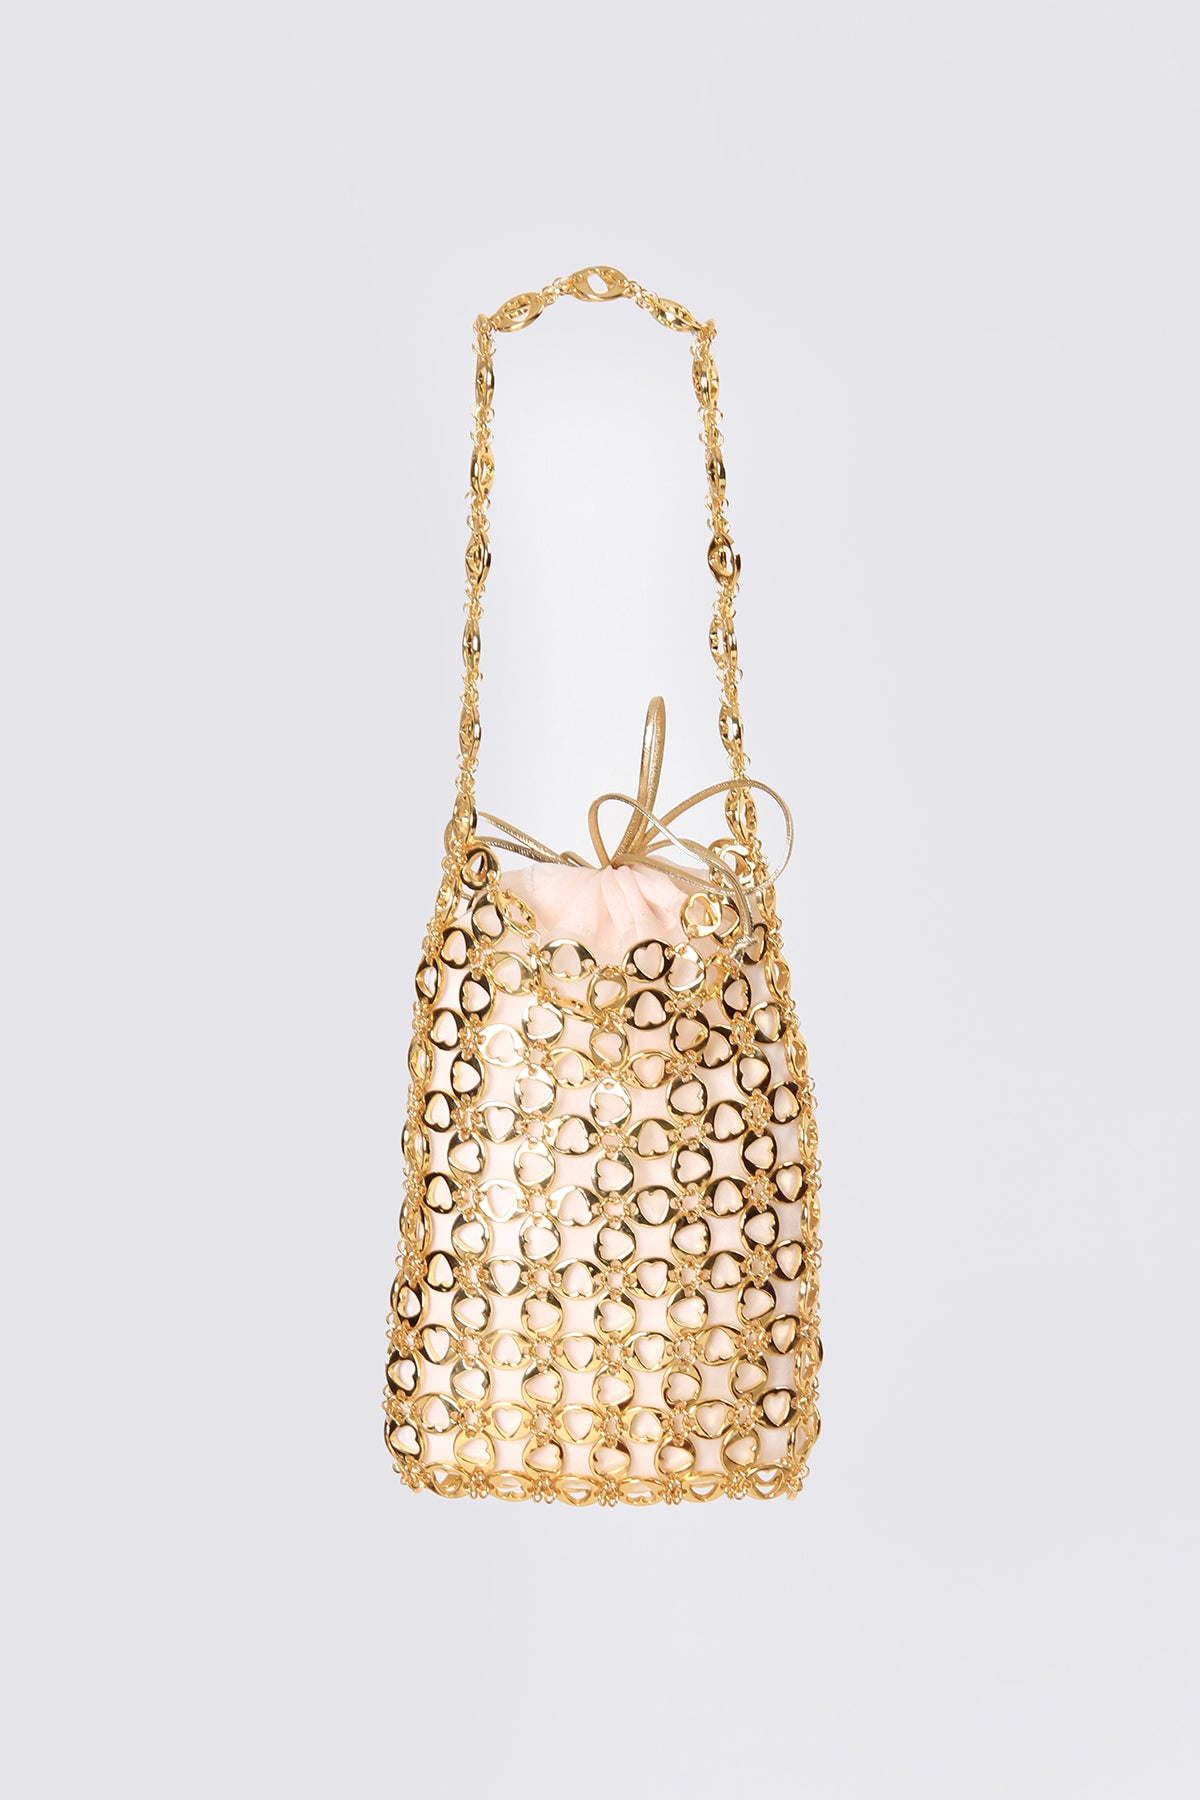 LE HEART OF GOLD BAG